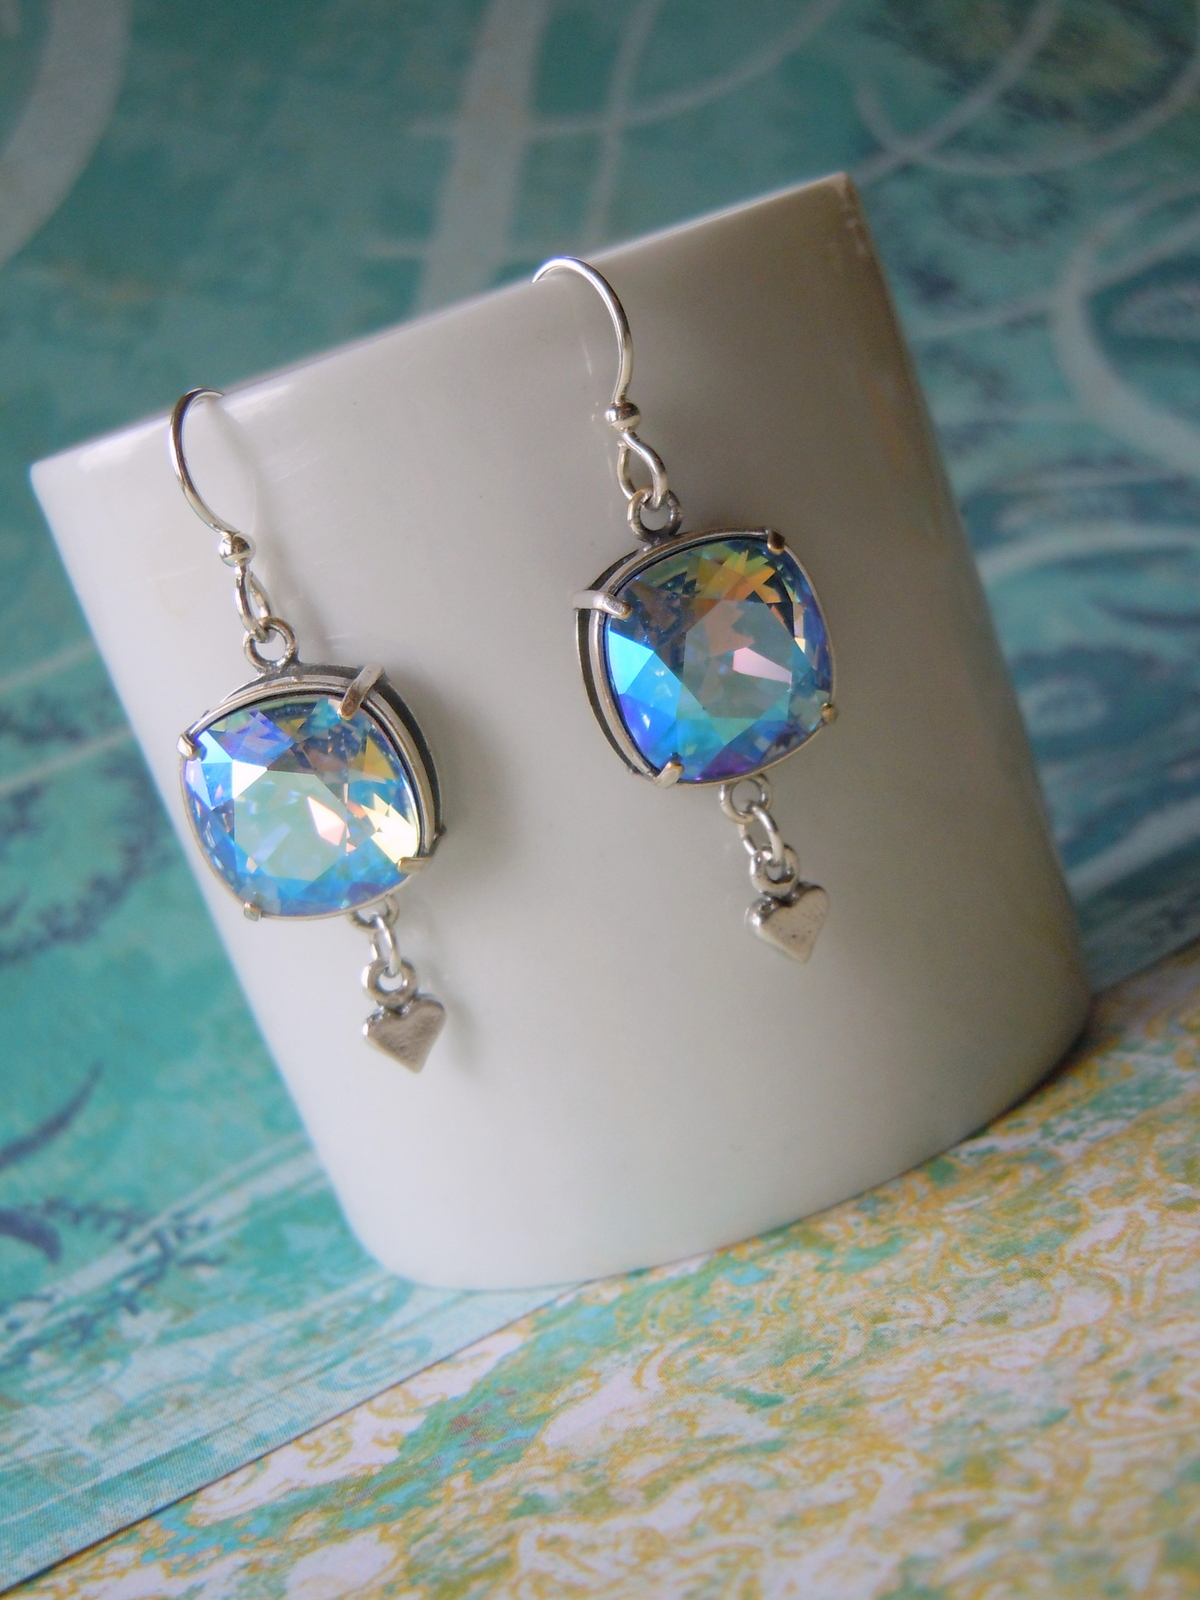 Blue Valentine Earrings by Rings & Things Designer Mollie Valente.